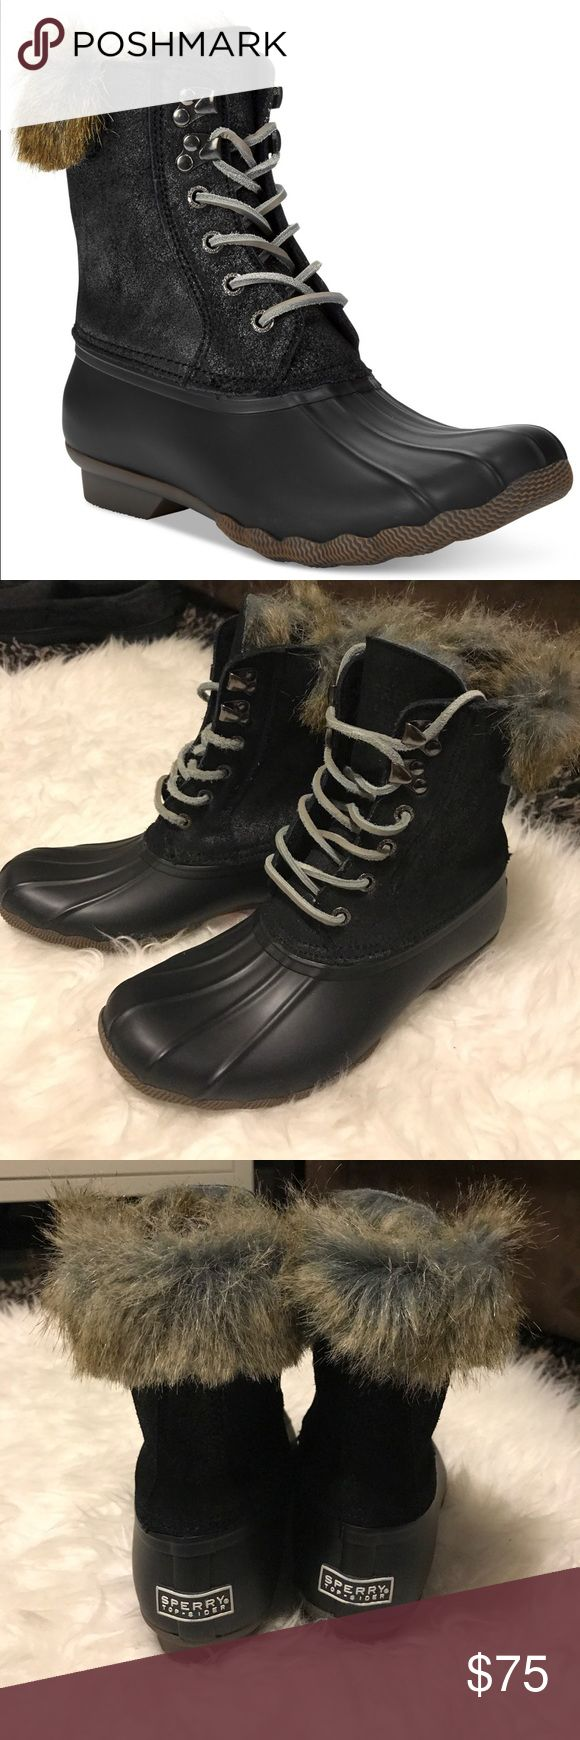 ✨SALE✨Brand New Sperry Top-Sider Duck Boots Brand-new no box. Black Top-Sider White Water Duck Boots. Faux fur. Women's size 6.5. Sperry Shoes Winter & Rain Boots